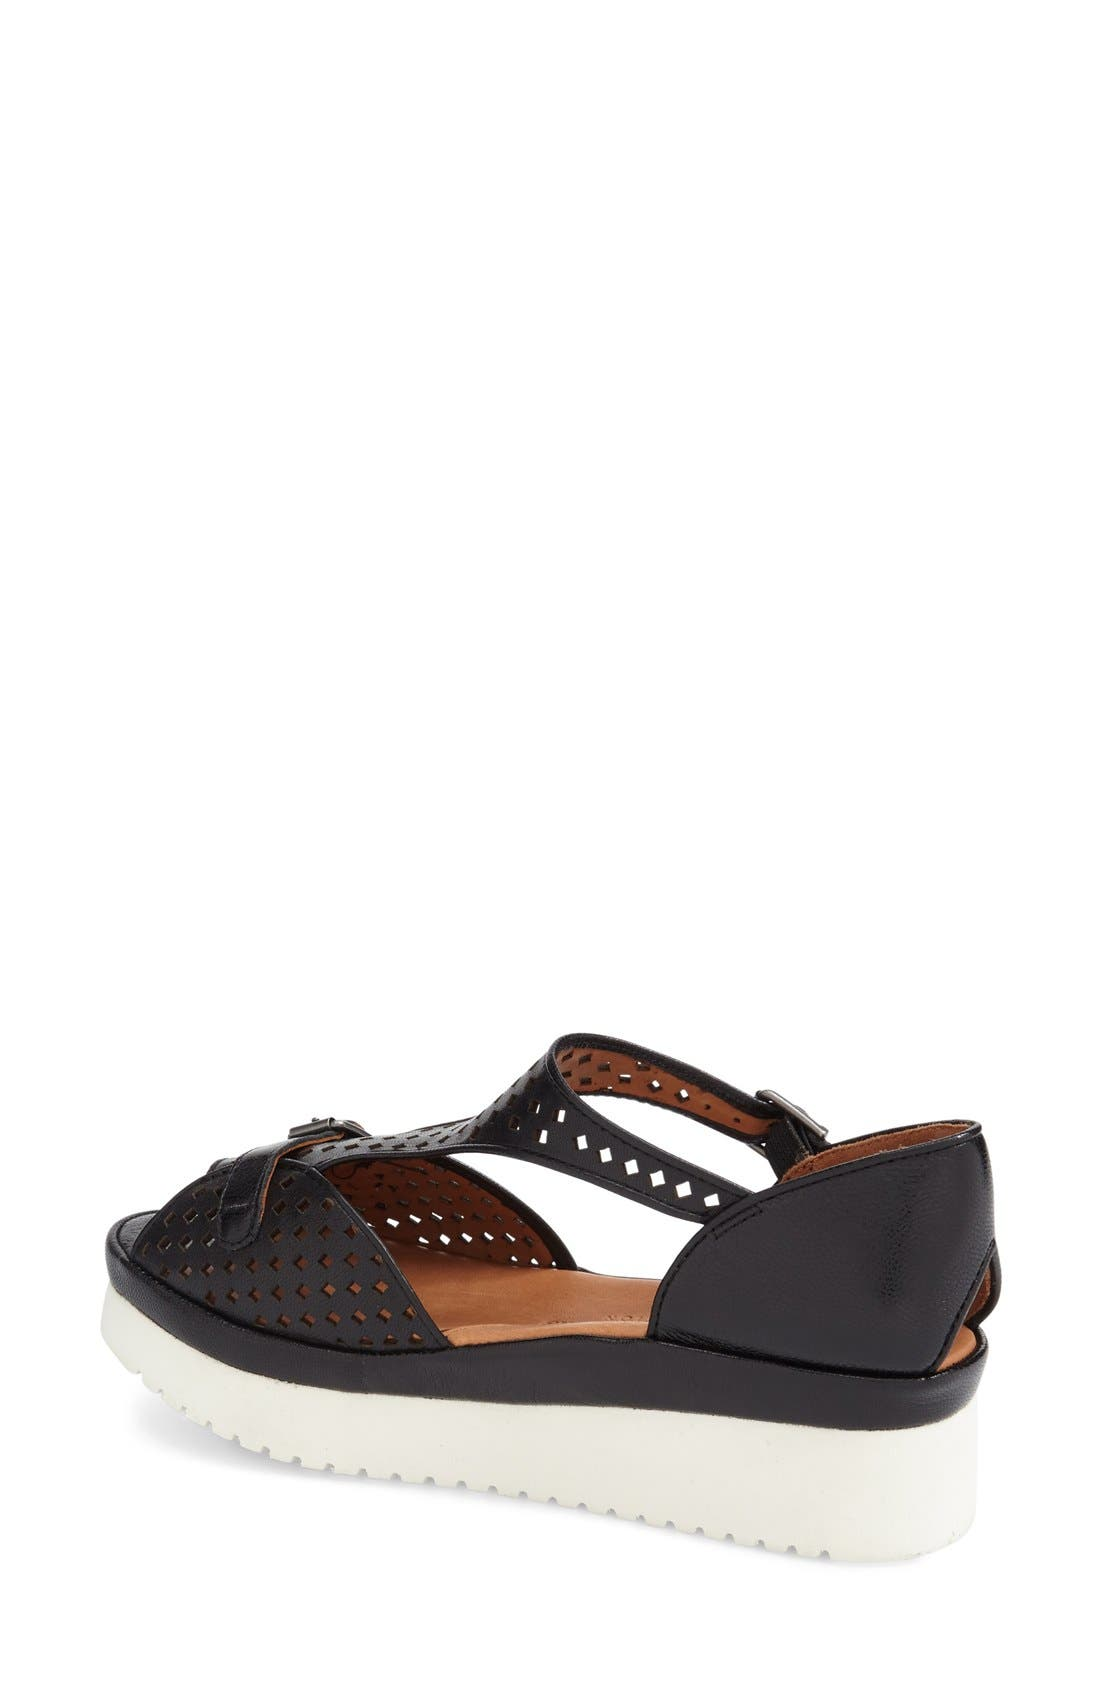 'Audric' Platform T-Strap Sandal,                             Alternate thumbnail 2, color,                             Black/ White Leather